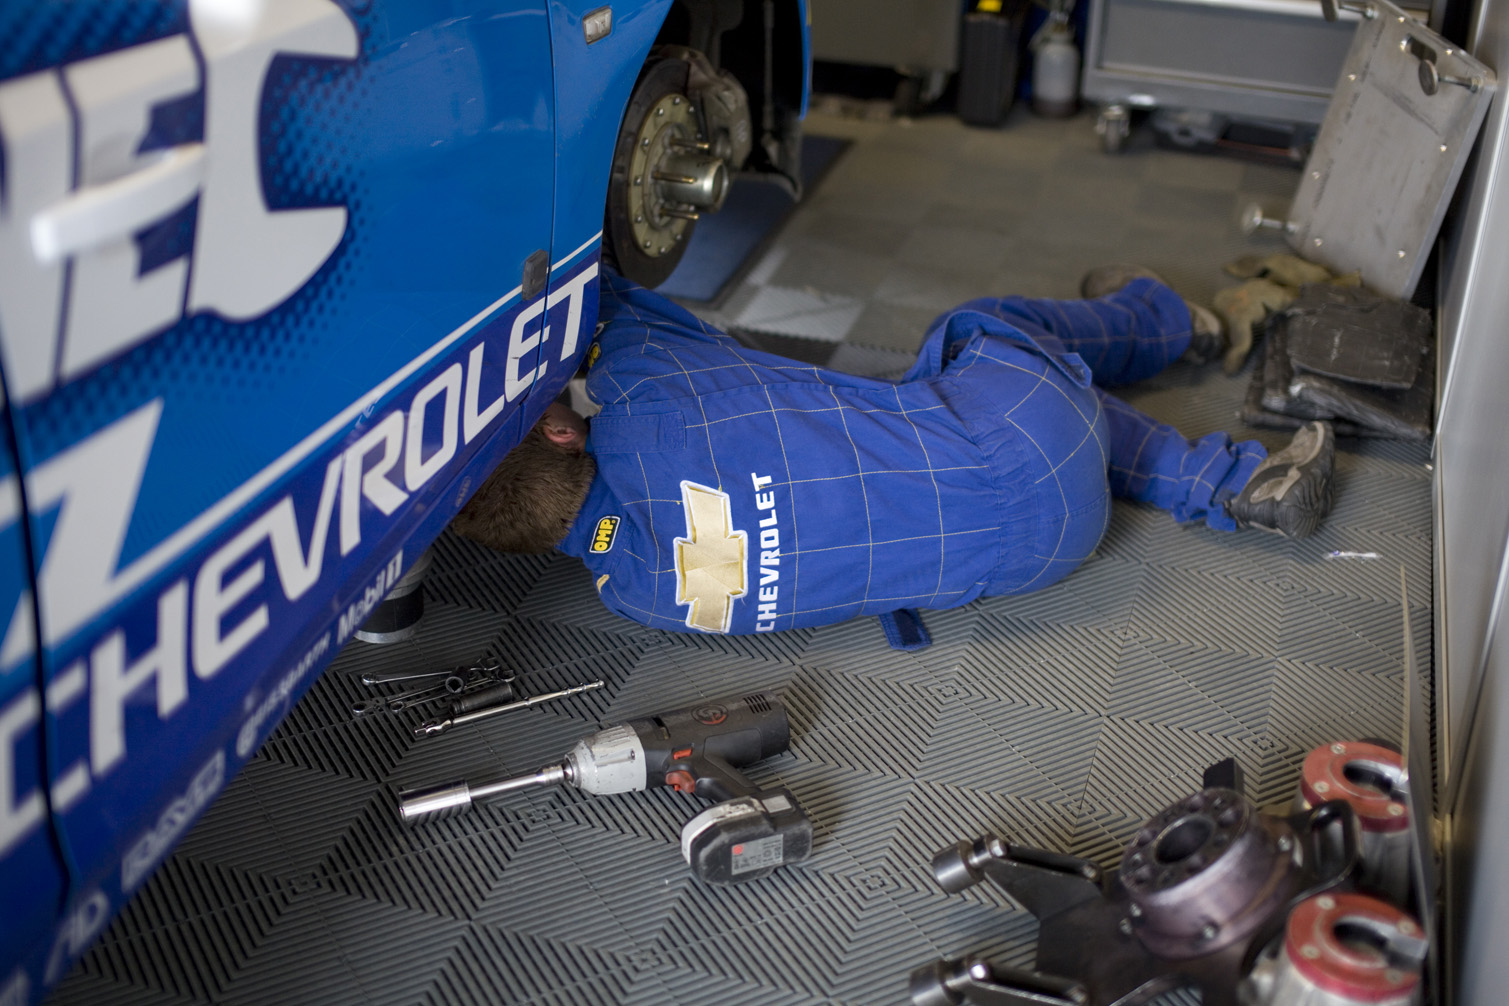 A Chevrolet mechanic works on Jason's car.